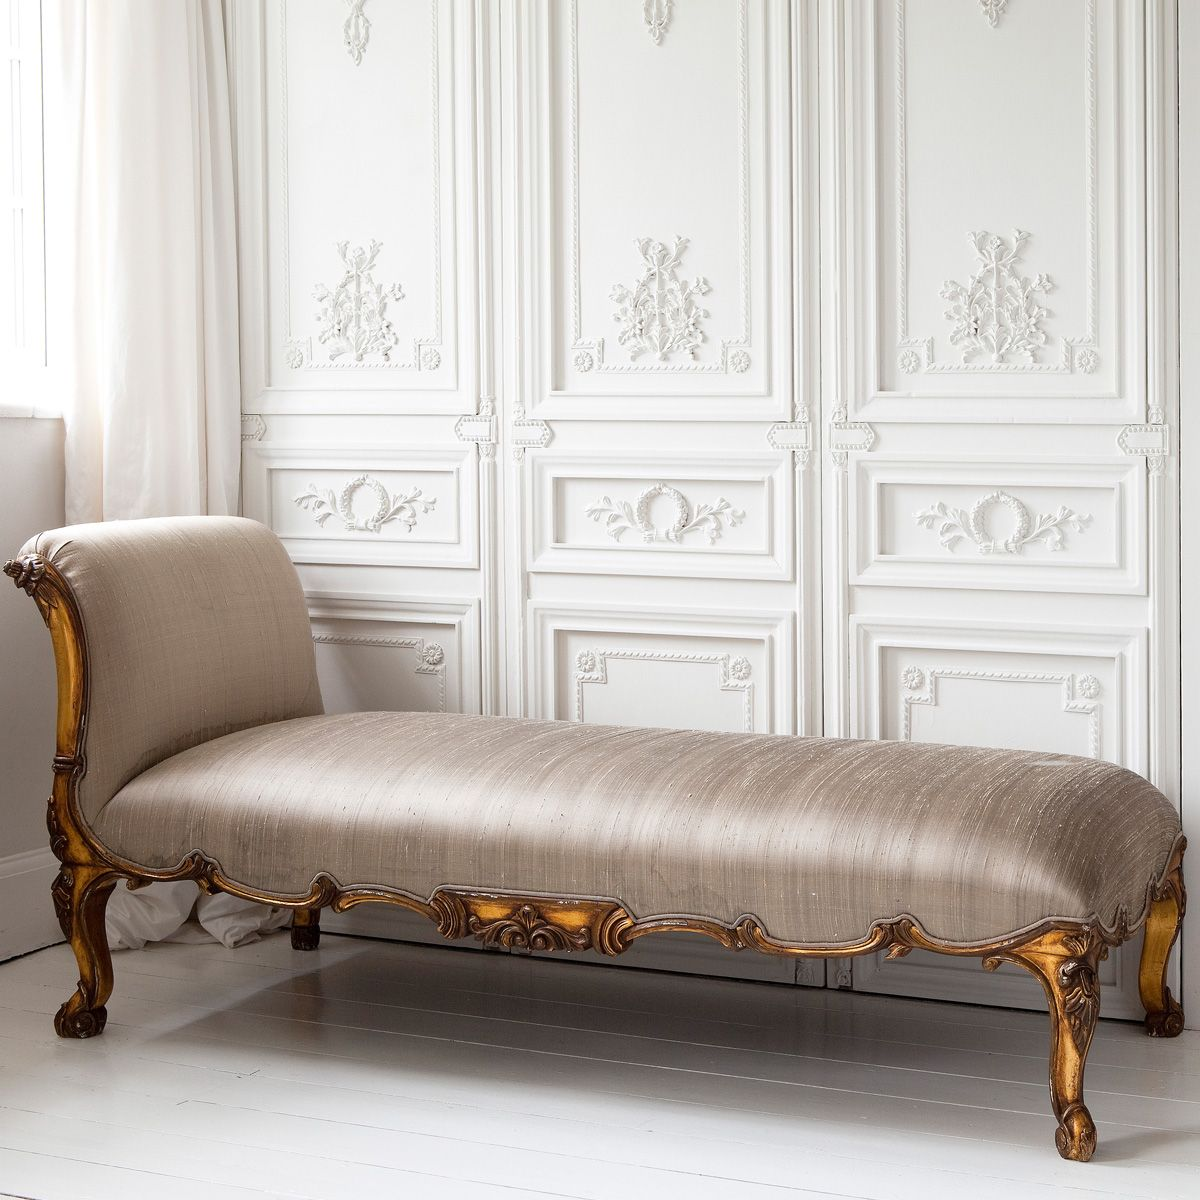 Versailles gold chaise longue french bedrooms chaise for Chaise longue designer